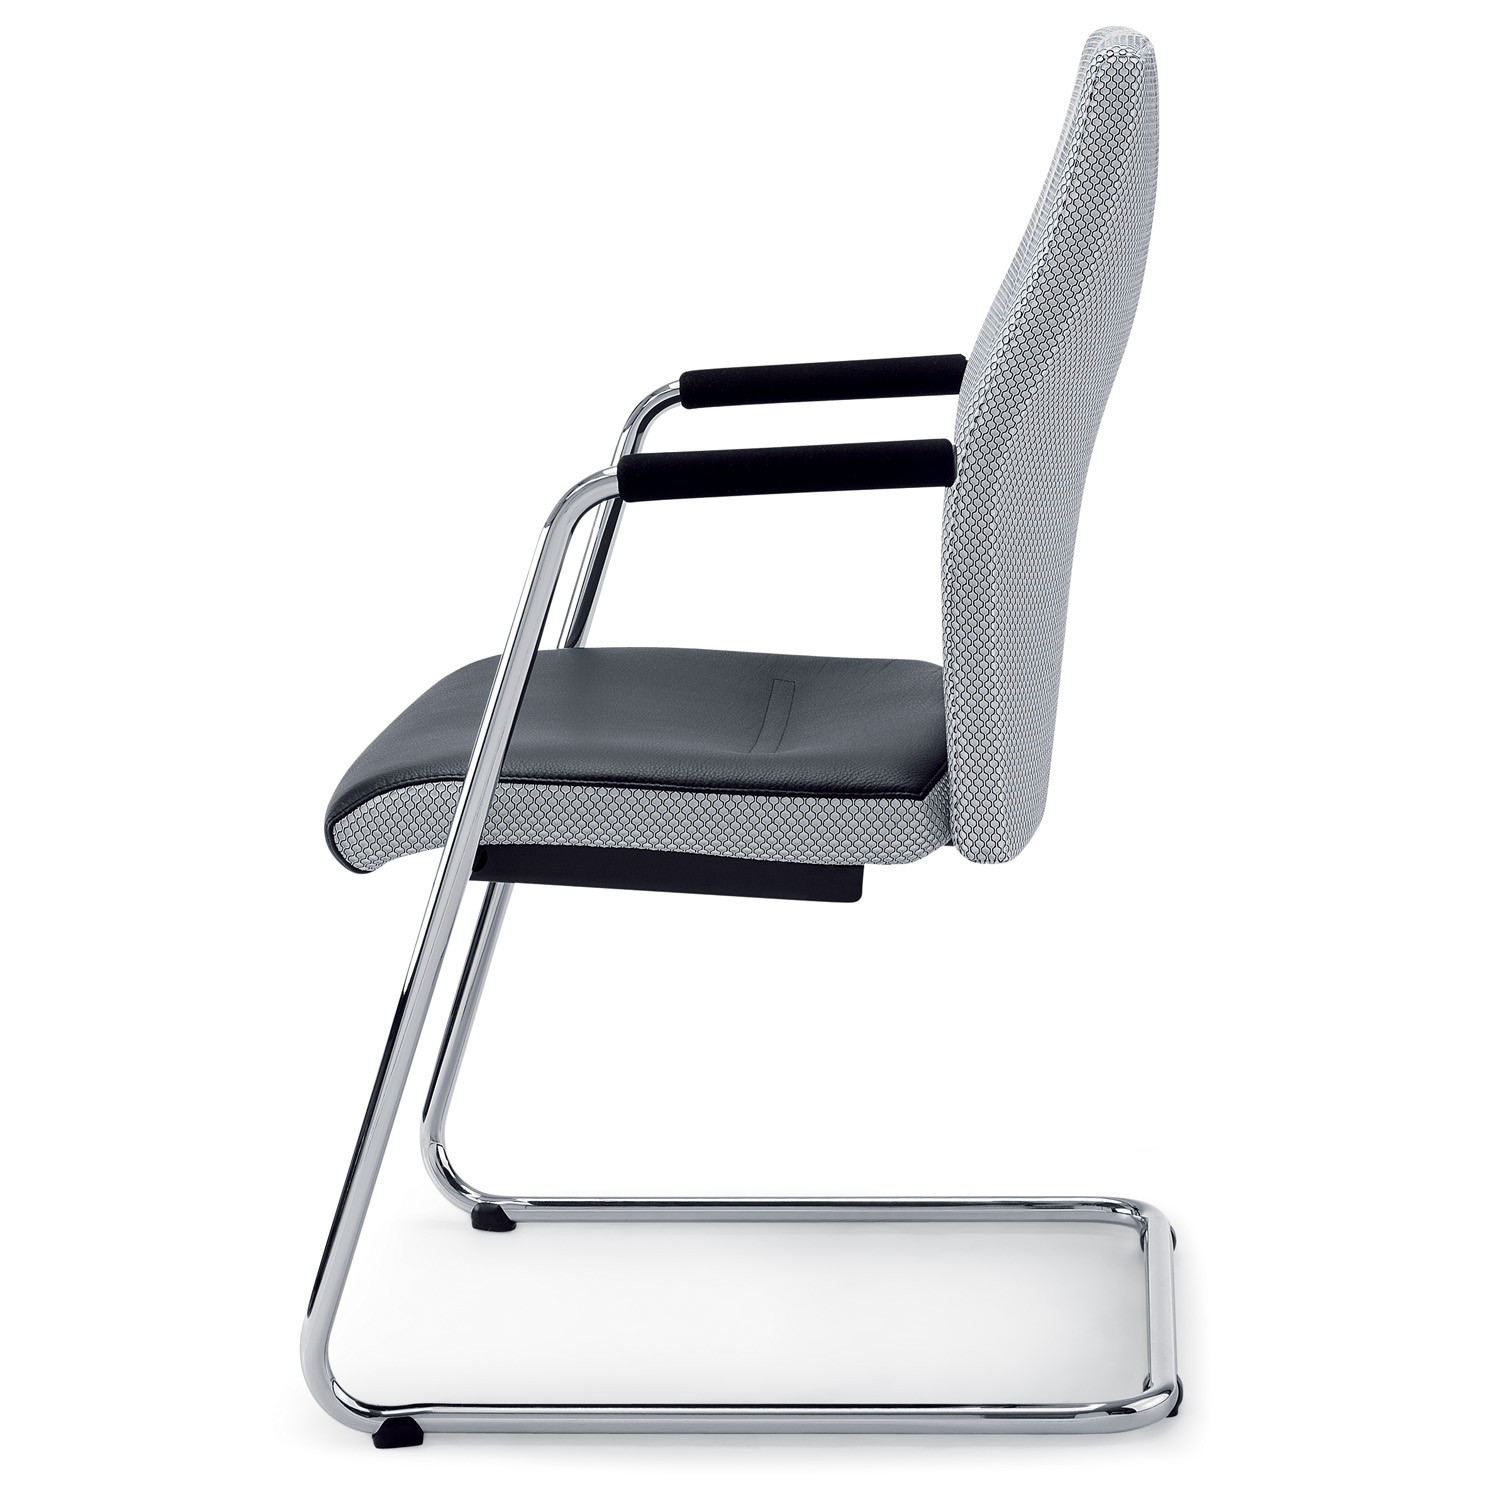 CuboFLEX Conference Chair